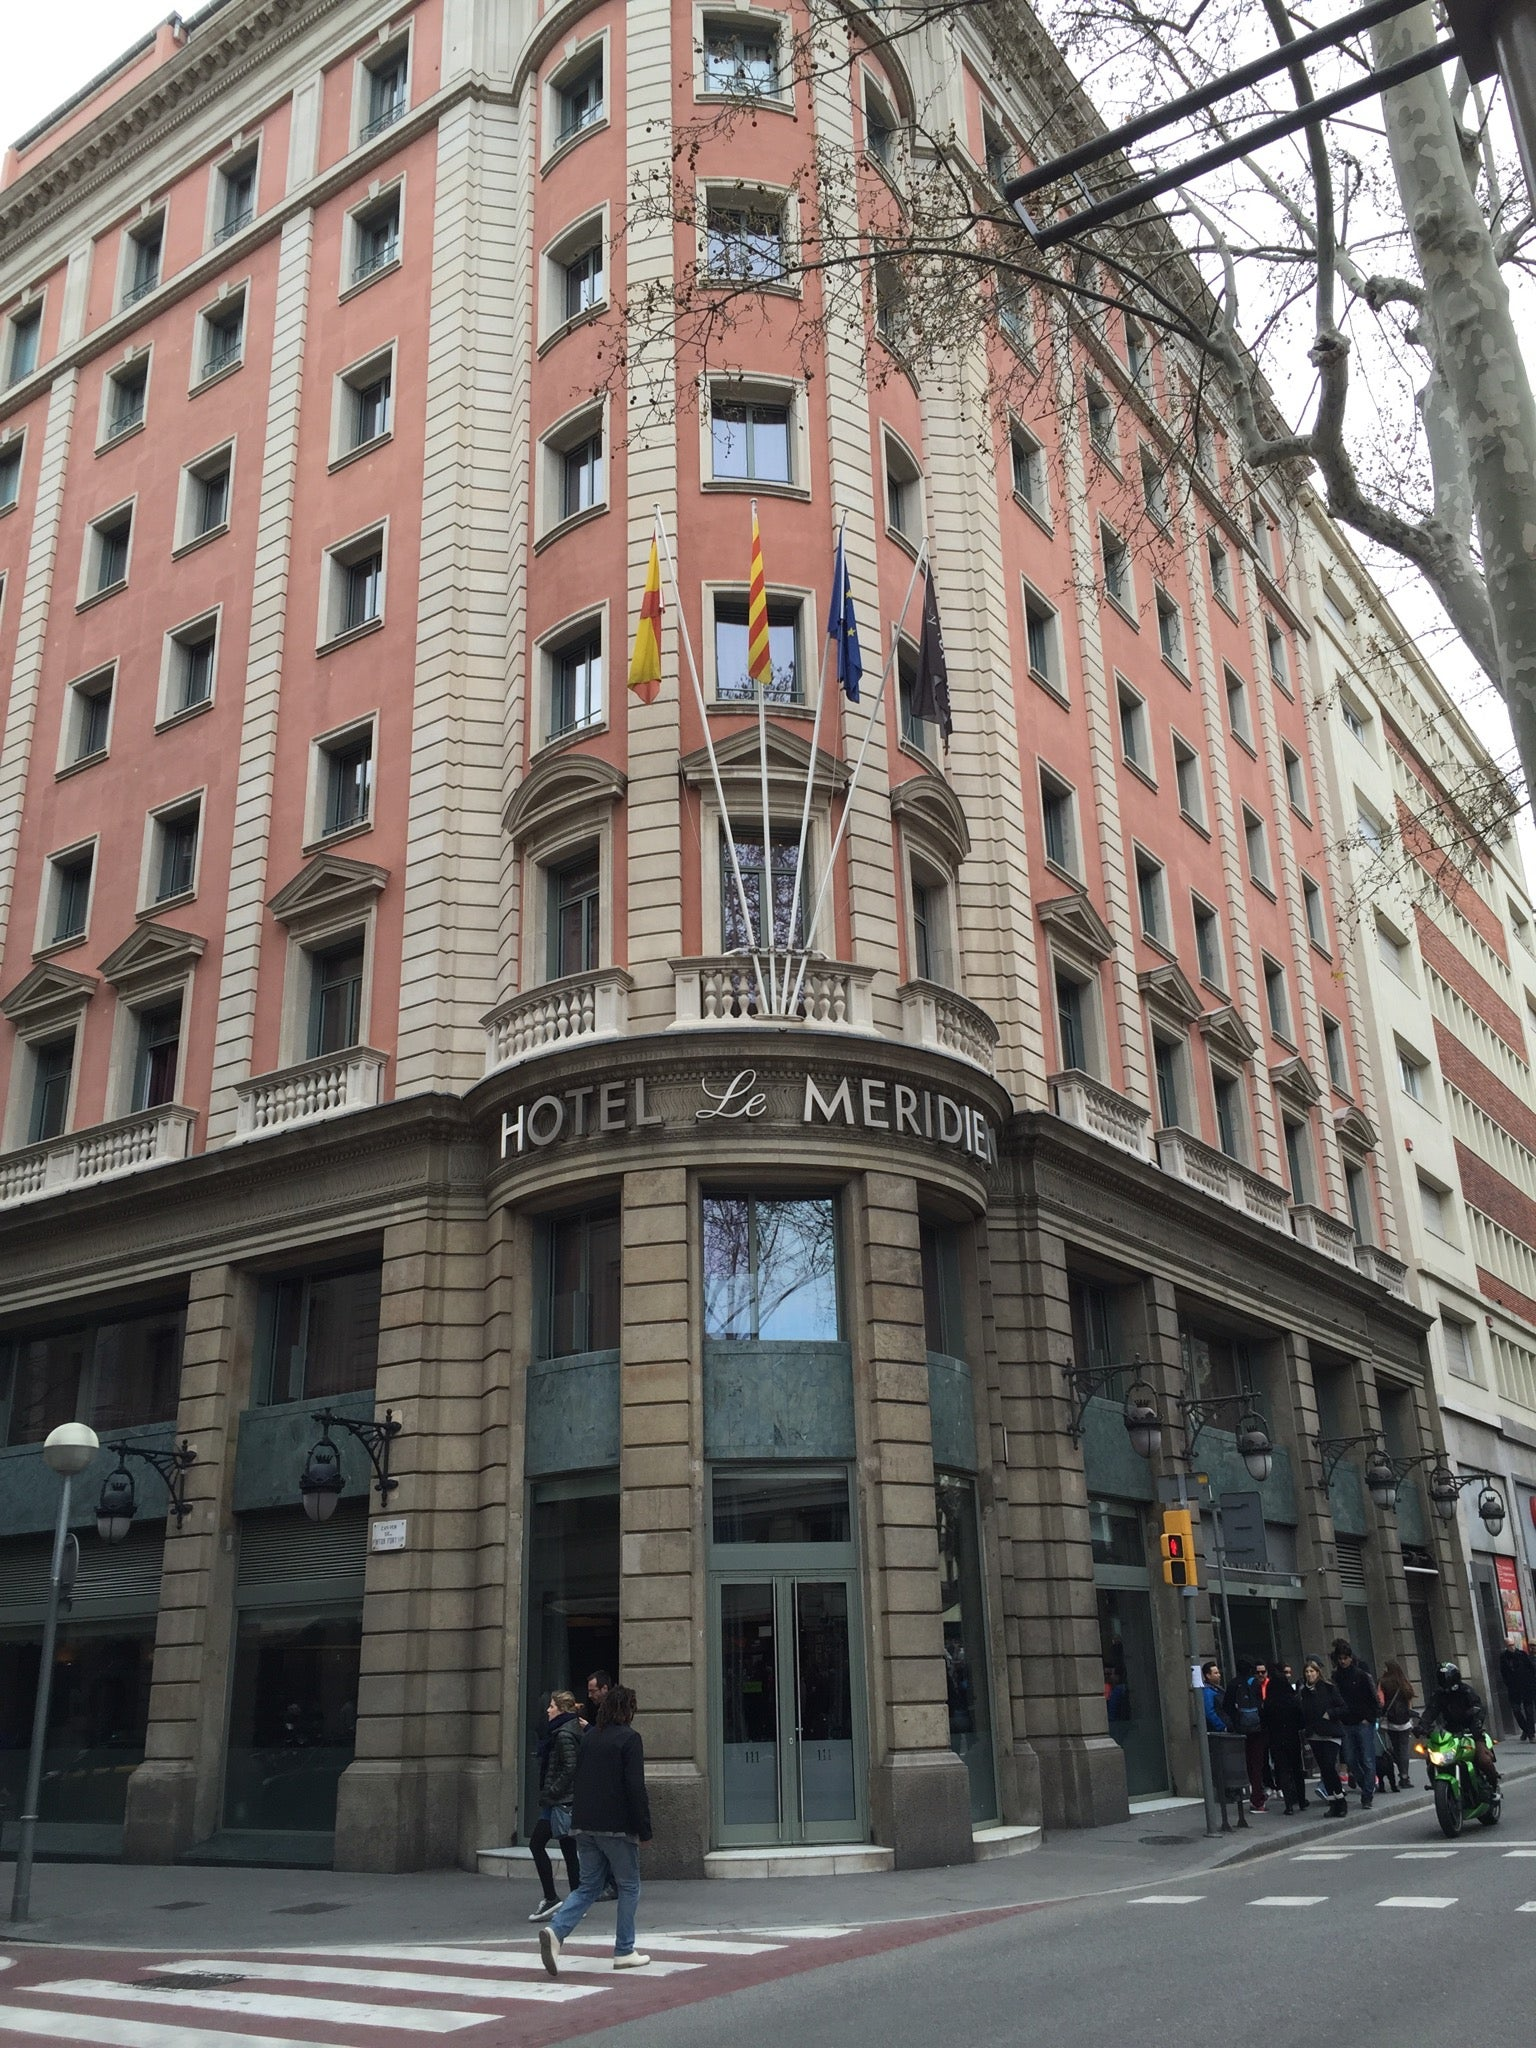 Review of Le Meridien Barcelona